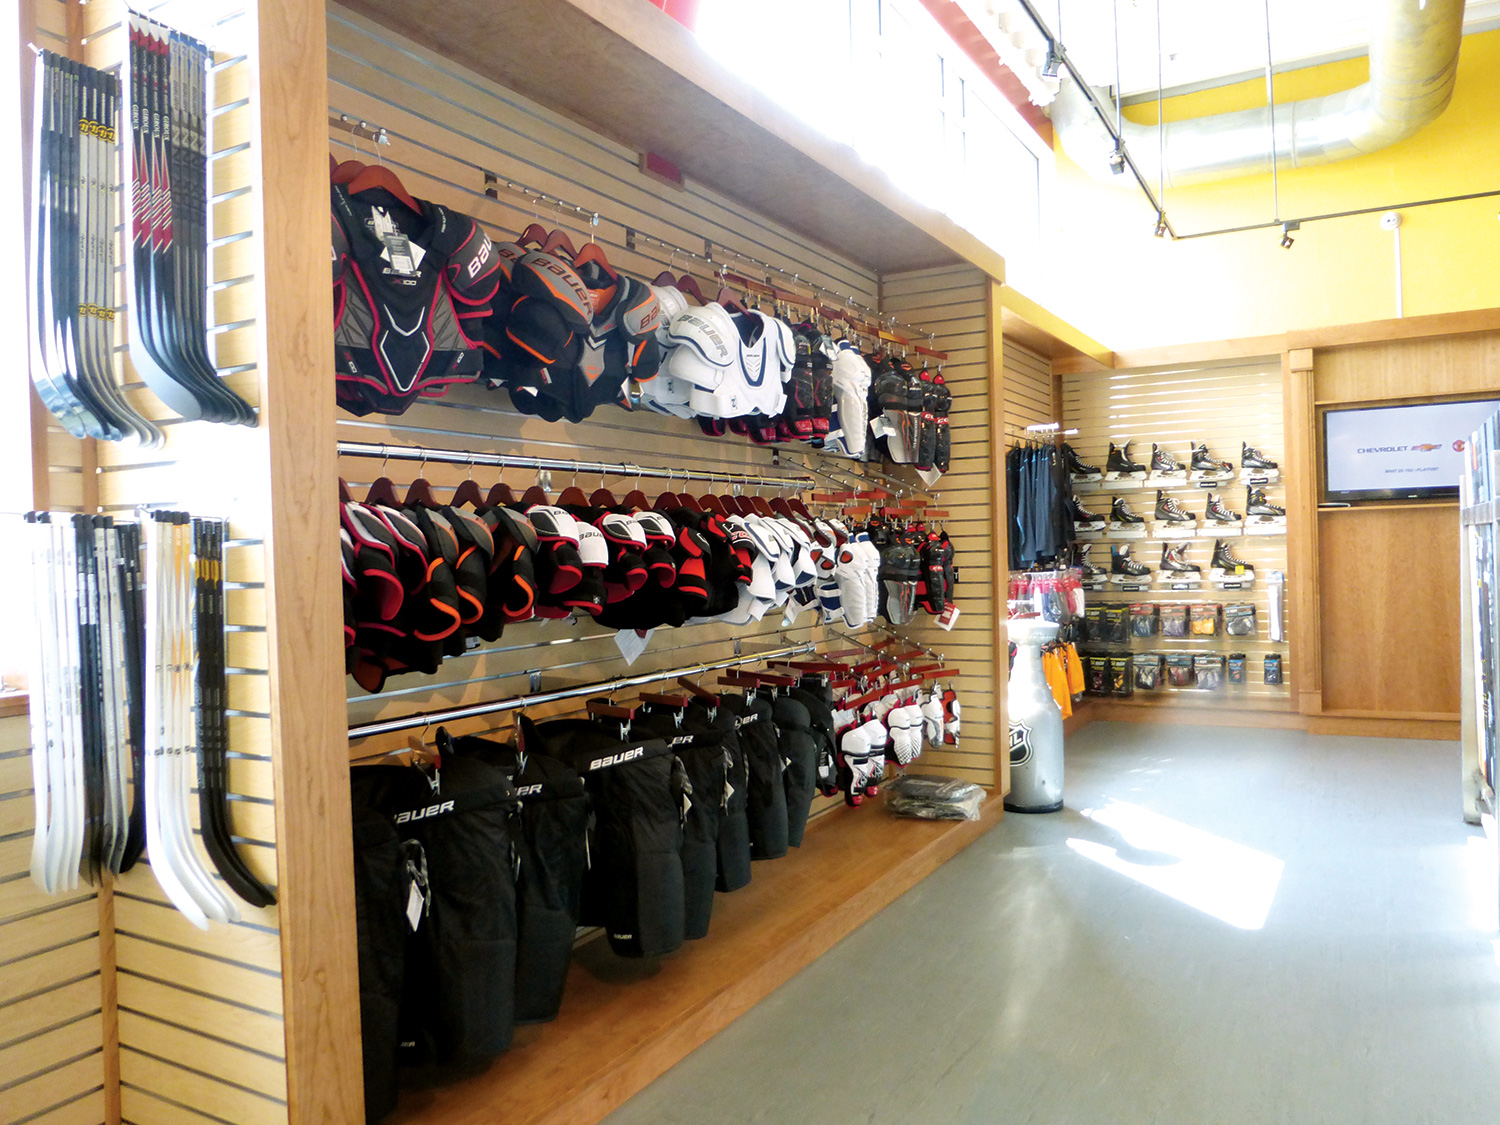 Ice Skating and Hockey Pro Shop in NYC  Chelsea Piers NYC